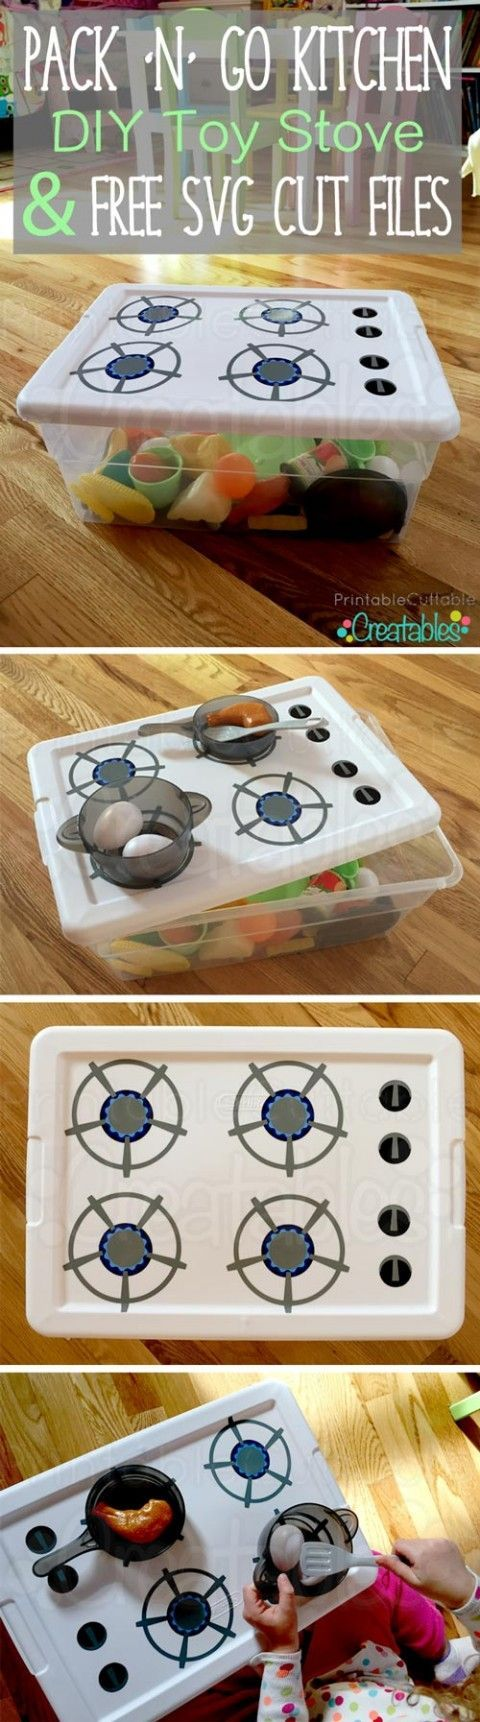 Diy toy stove this is brilliant a little portable toy kitchen you diy toy stove this is brilliant a little portable toy kitchen you can make yourself solutioingenieria Images